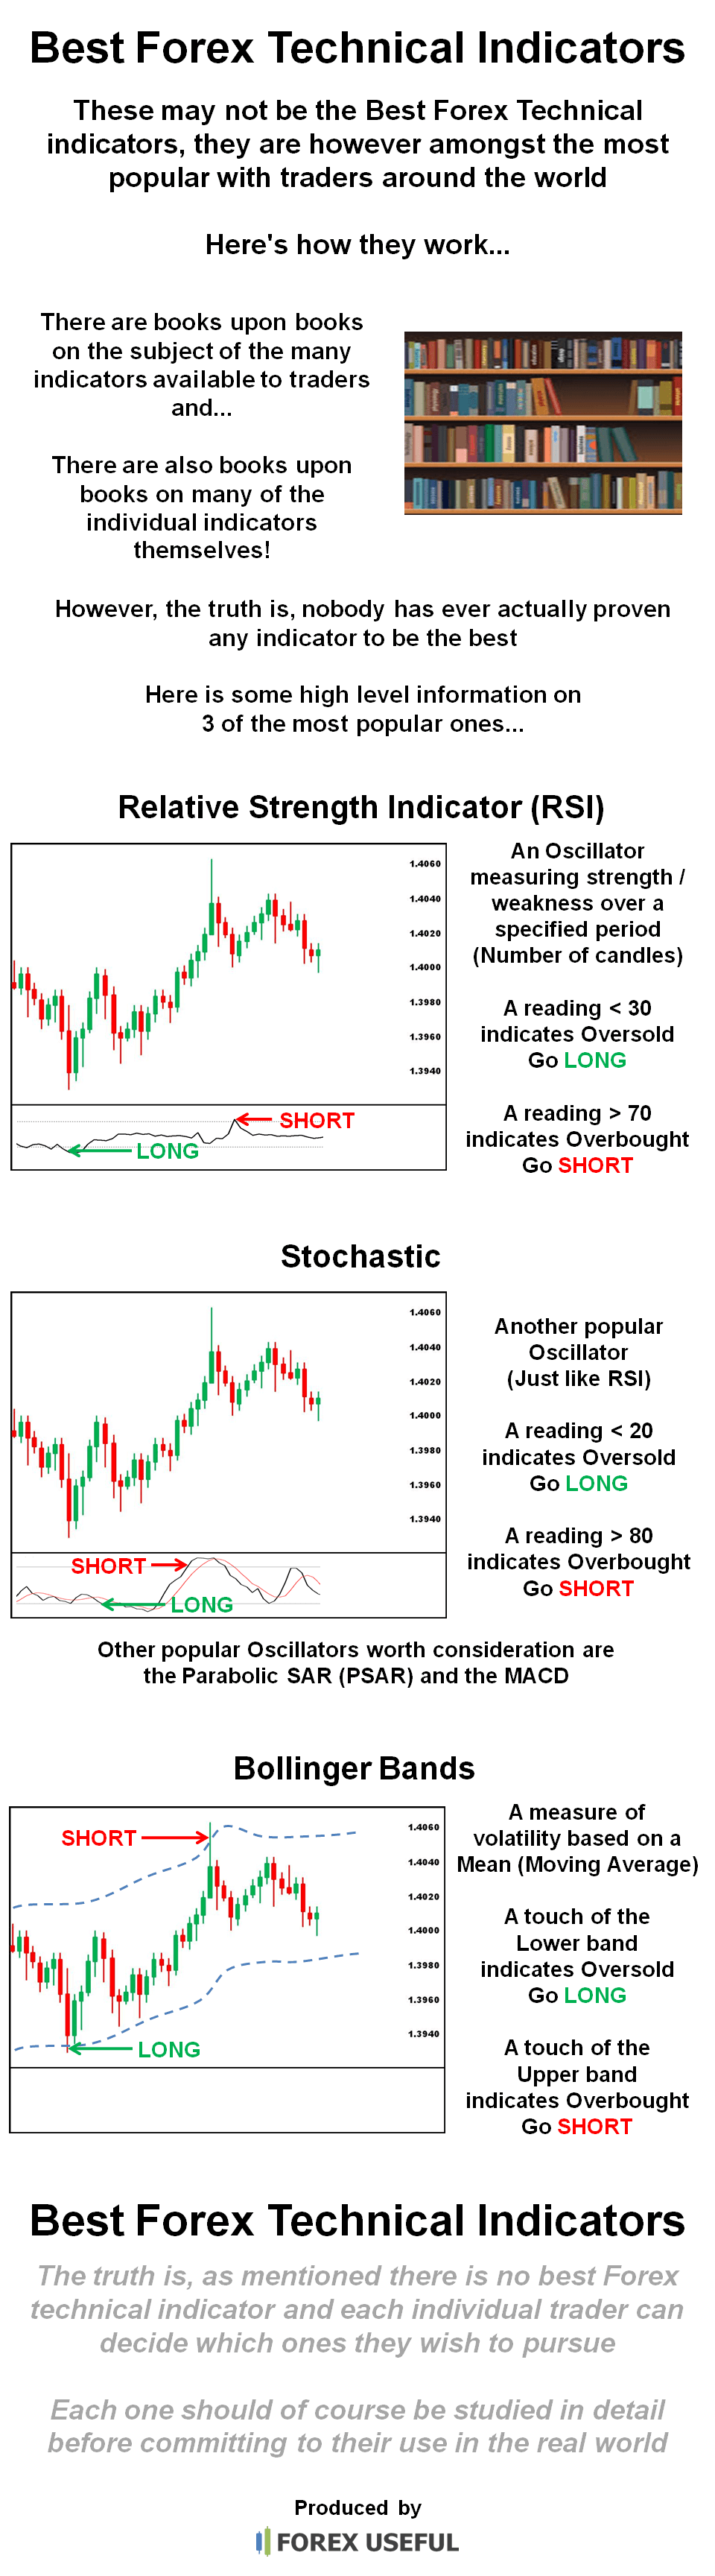 Forex technical indicators guide